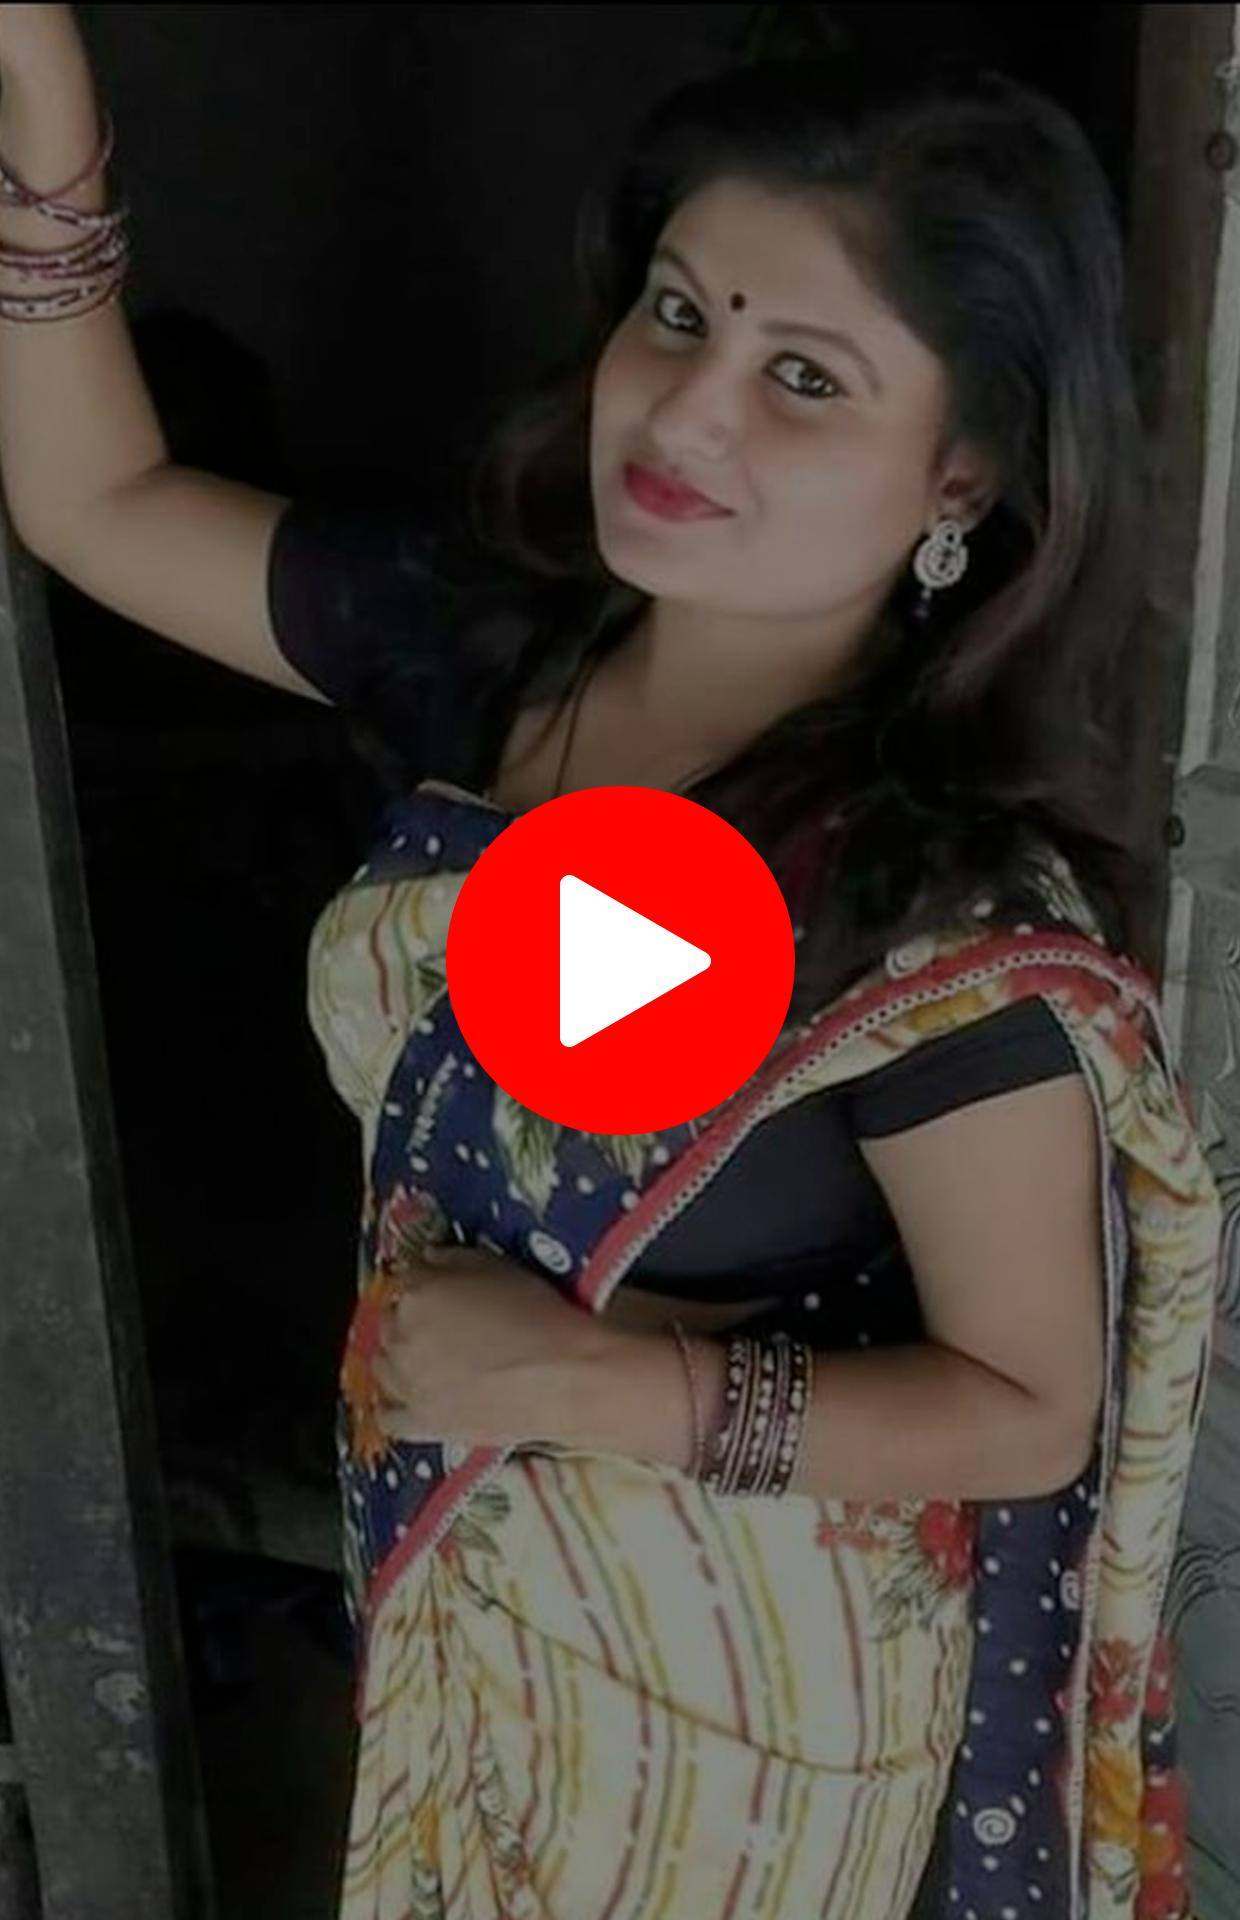 Xx Desi Bhabhi Ke Video For Android - Apk Download-9322